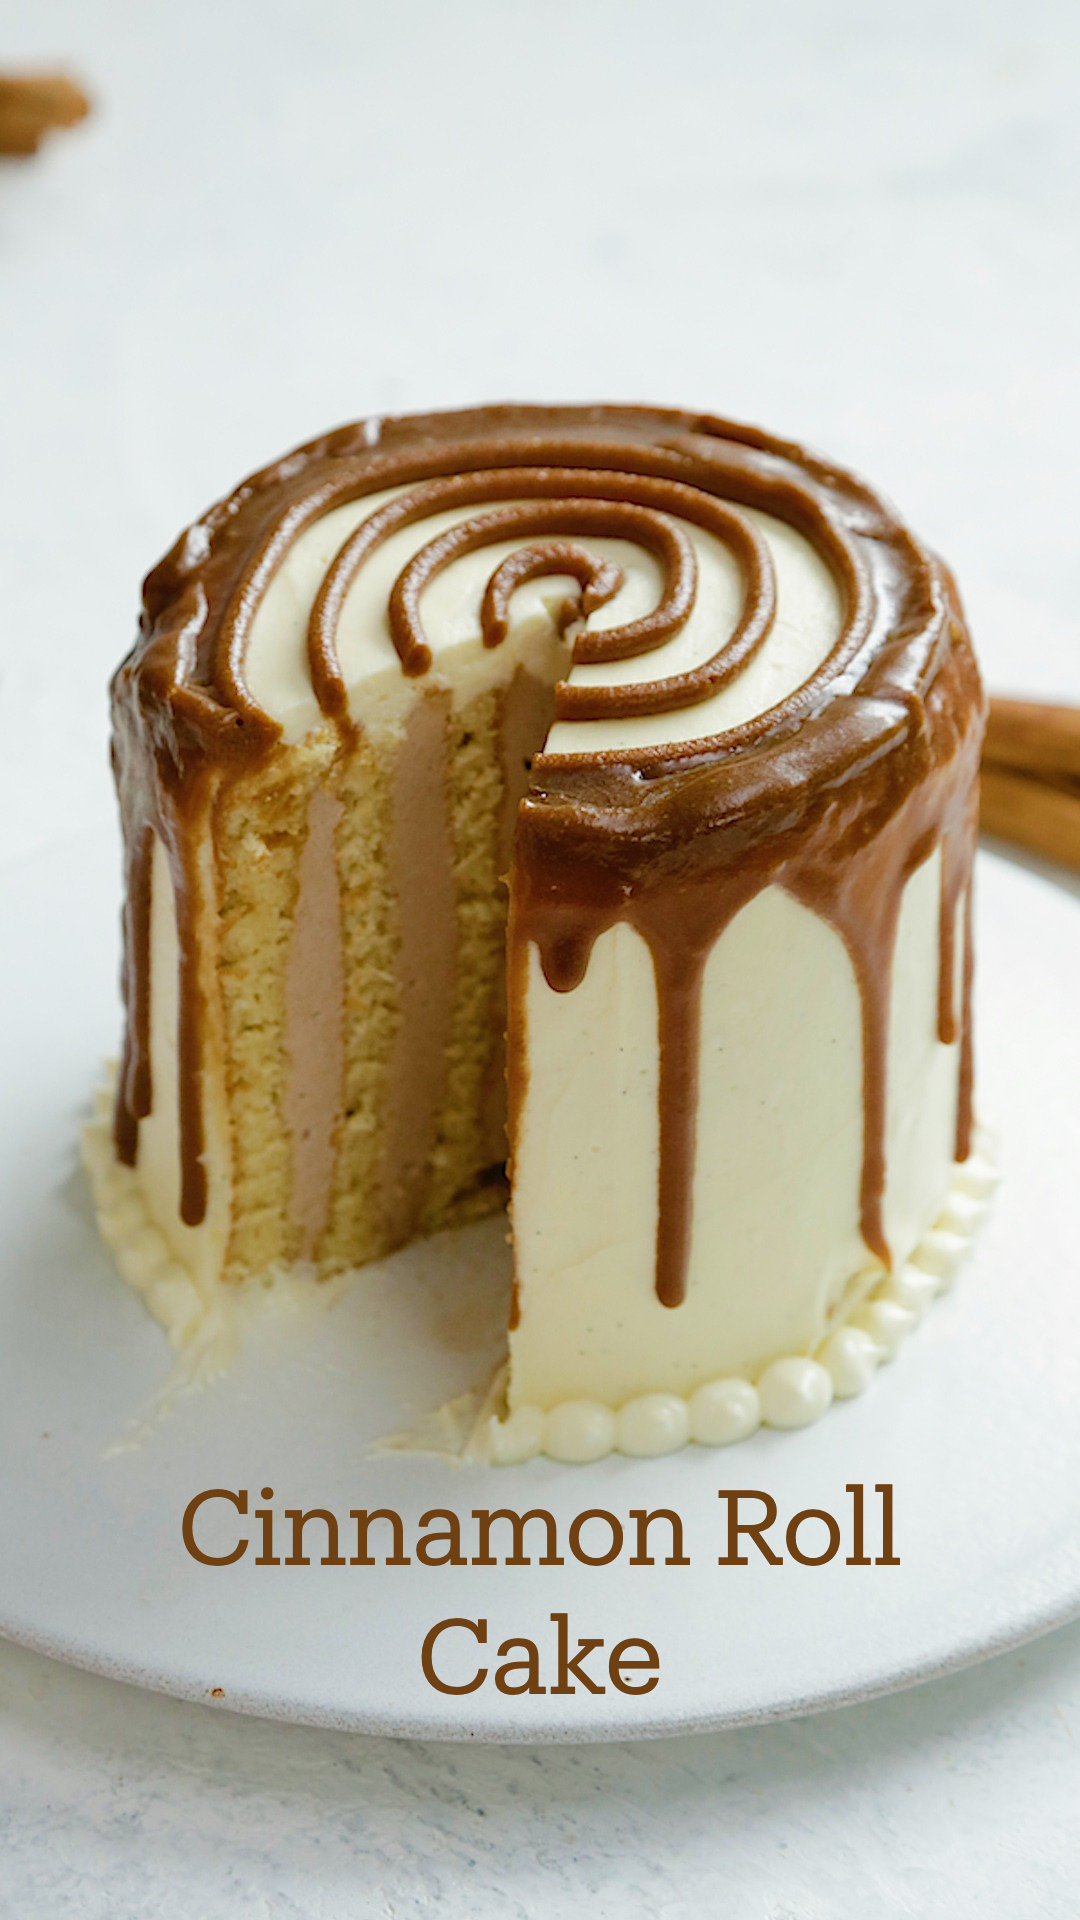 Photo of Cinnamon Roll Cake